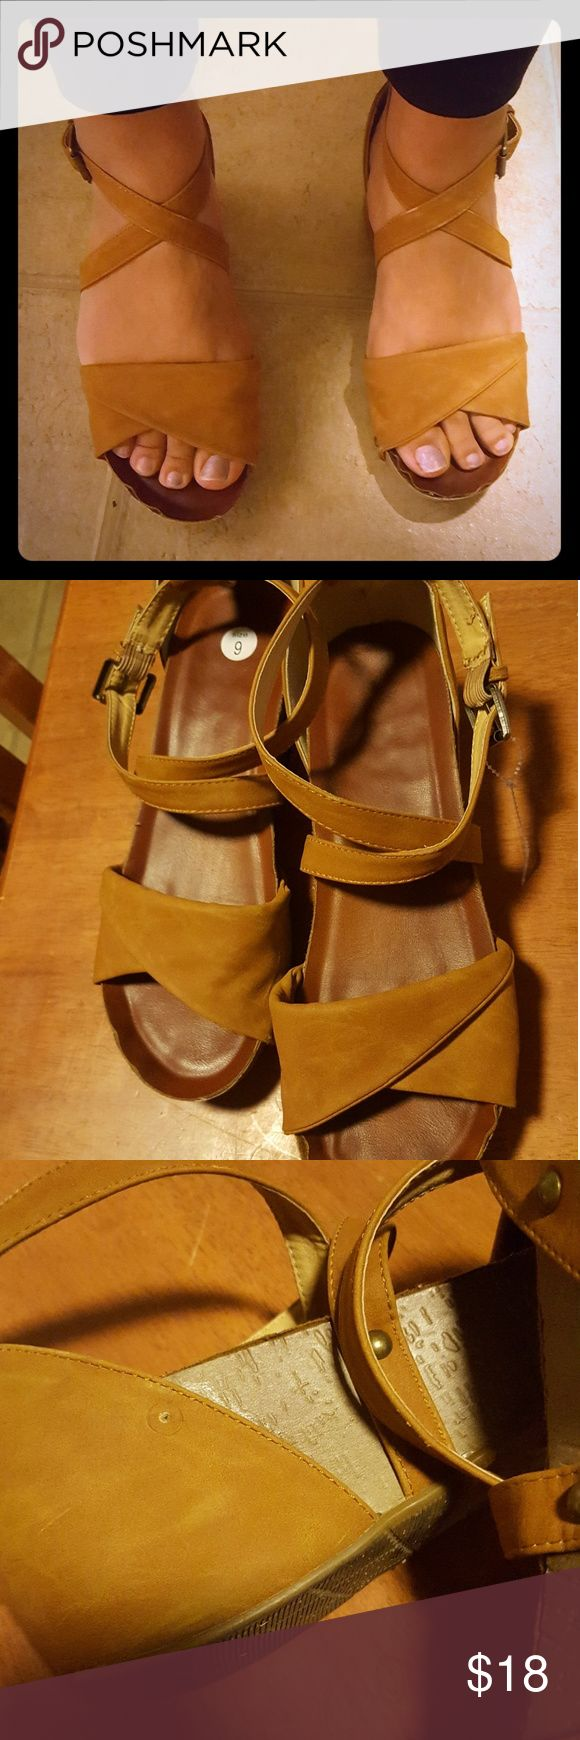 Leather Clog-like Sandal Thick Leather strap sandal with a cork Base. Rubber bottom. Brand: unknown last picture shows either VOG or OG. Did reaserch but unable to.find.  Very comfortable shoe but too big. EUC,one inter-stud missing(Pictured) OG Shoes Mules & Clogs